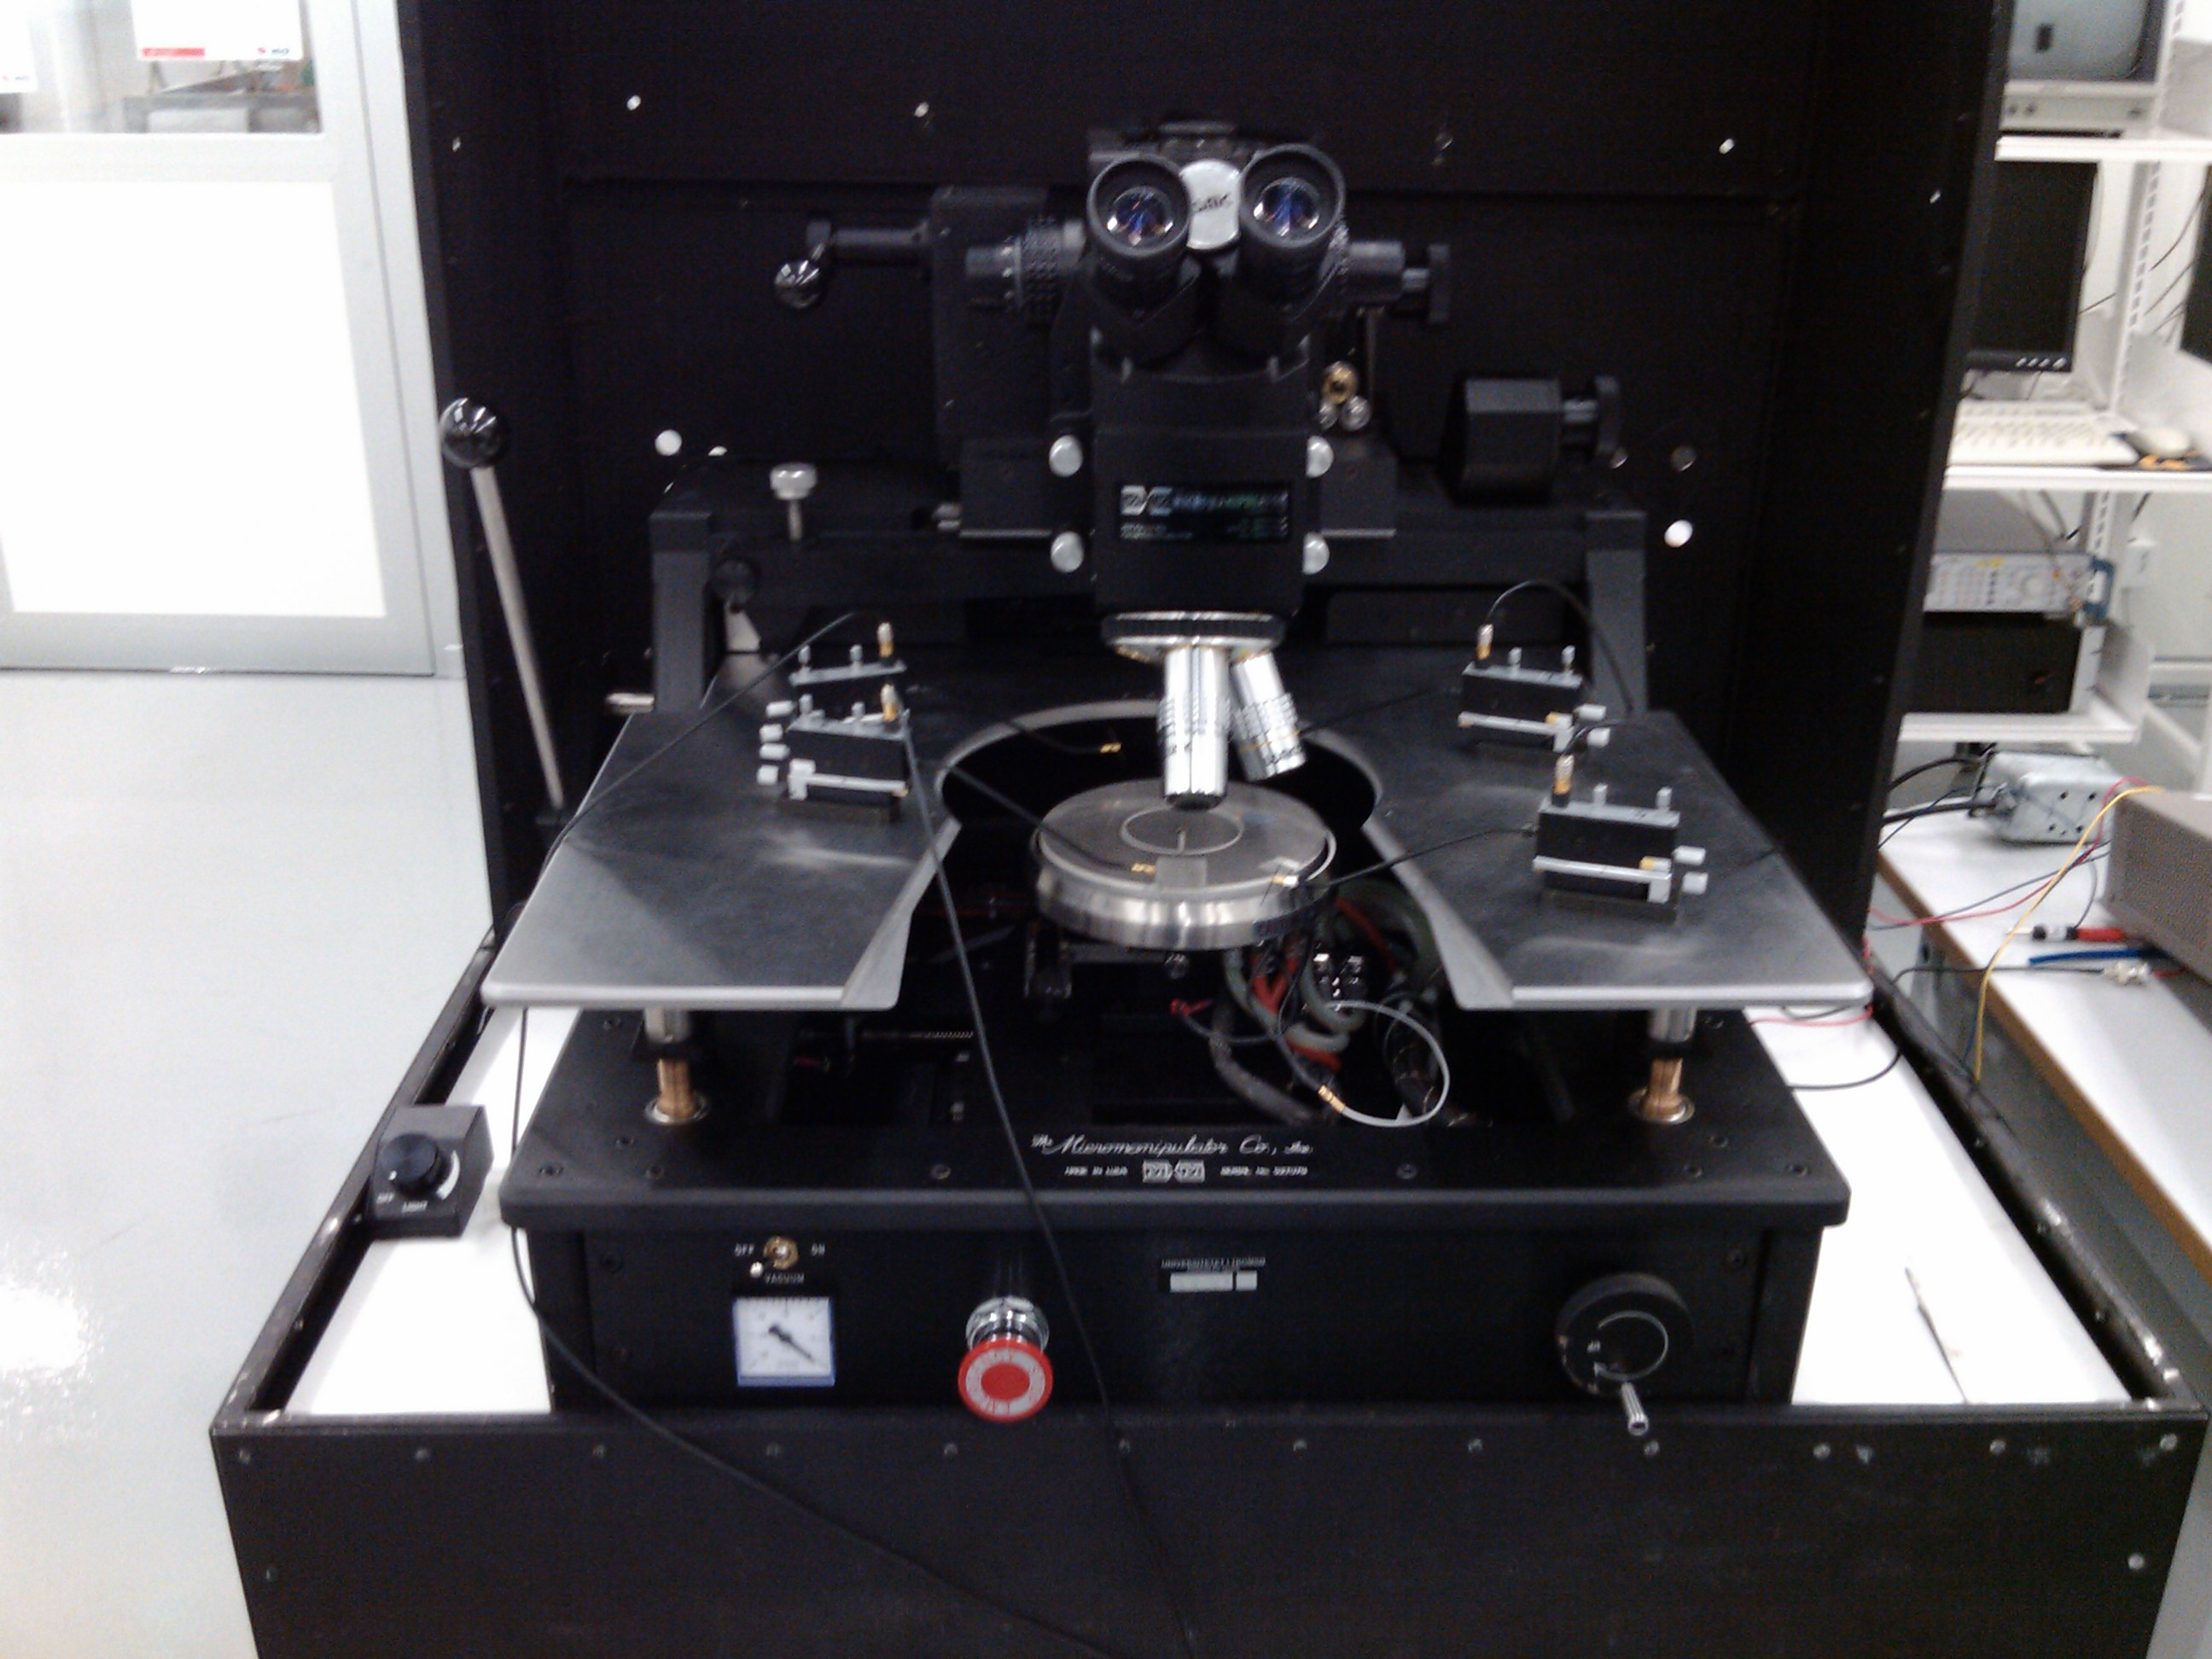 Picture of Probe station RF